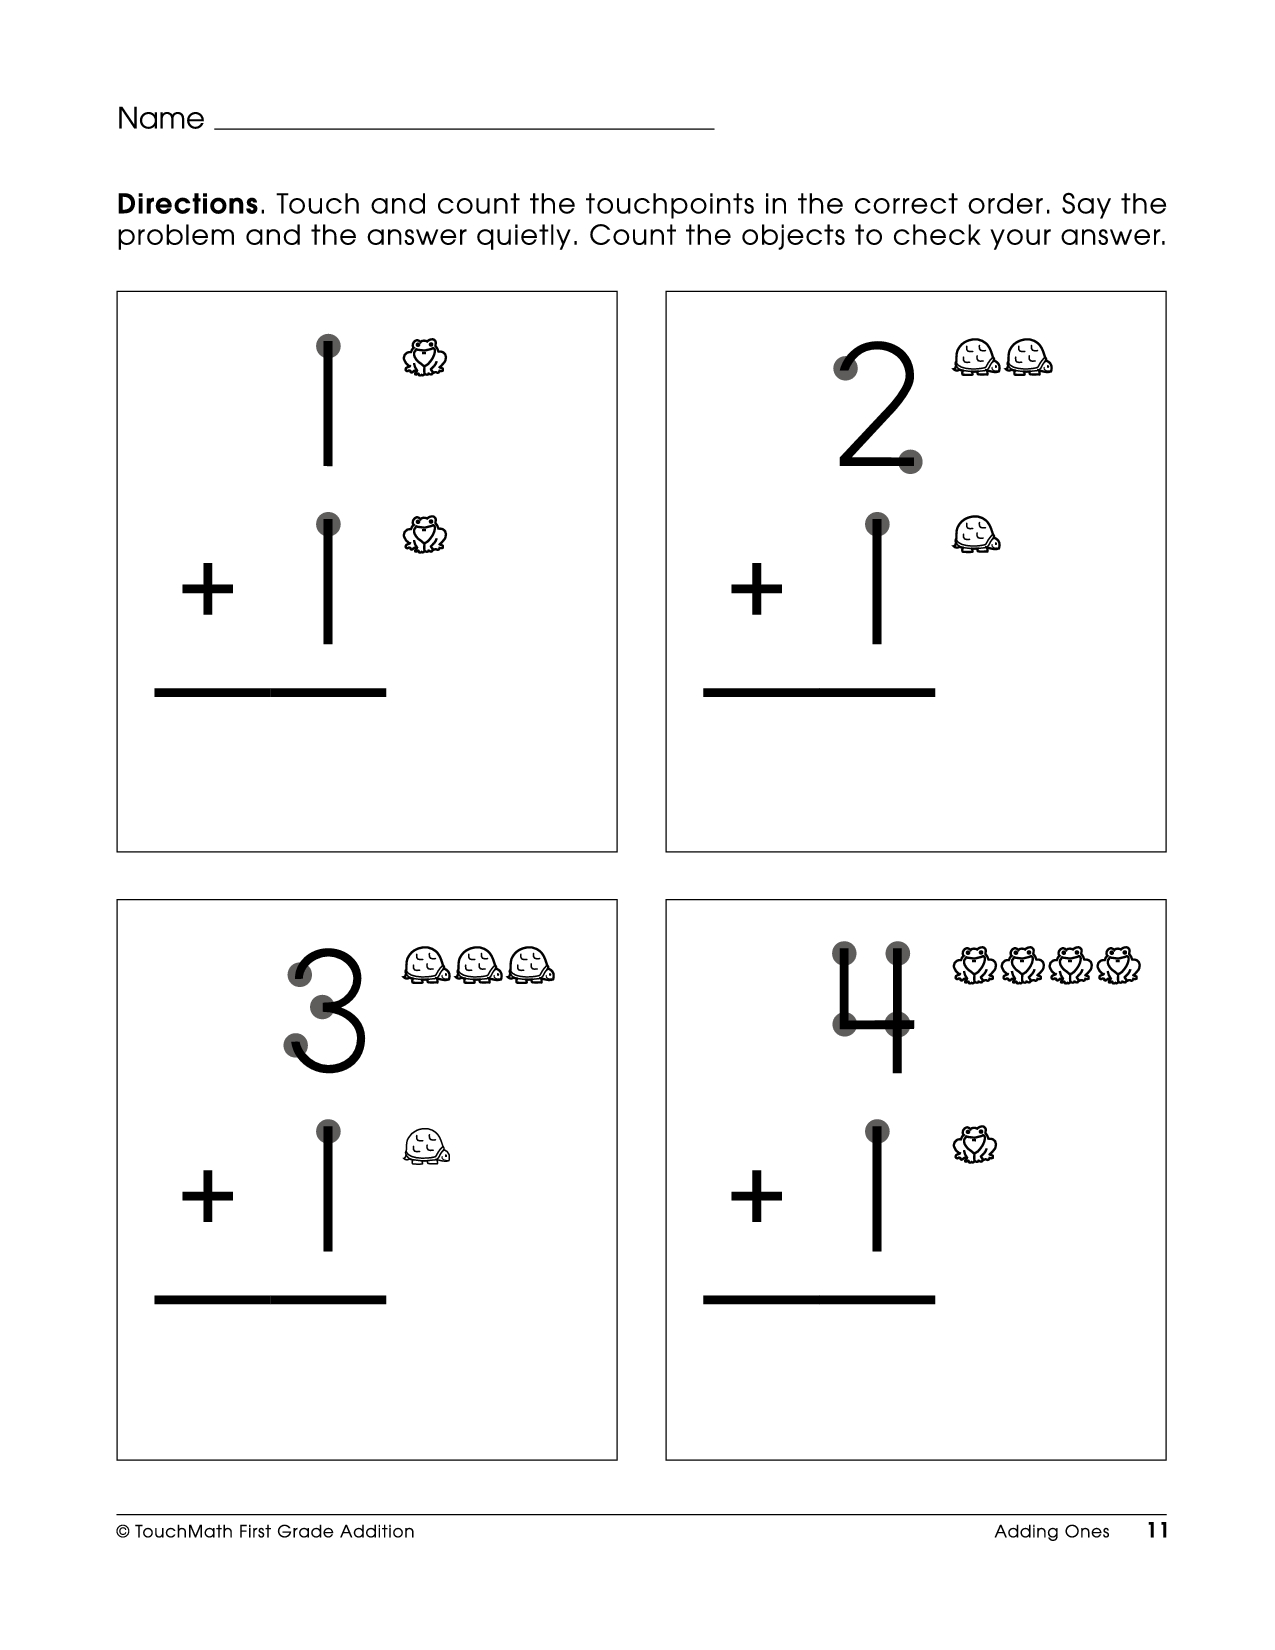 Touch Point Math Worksheet. |. This Is How I Taught Myself To Add | Touch Math Printable Worksheets